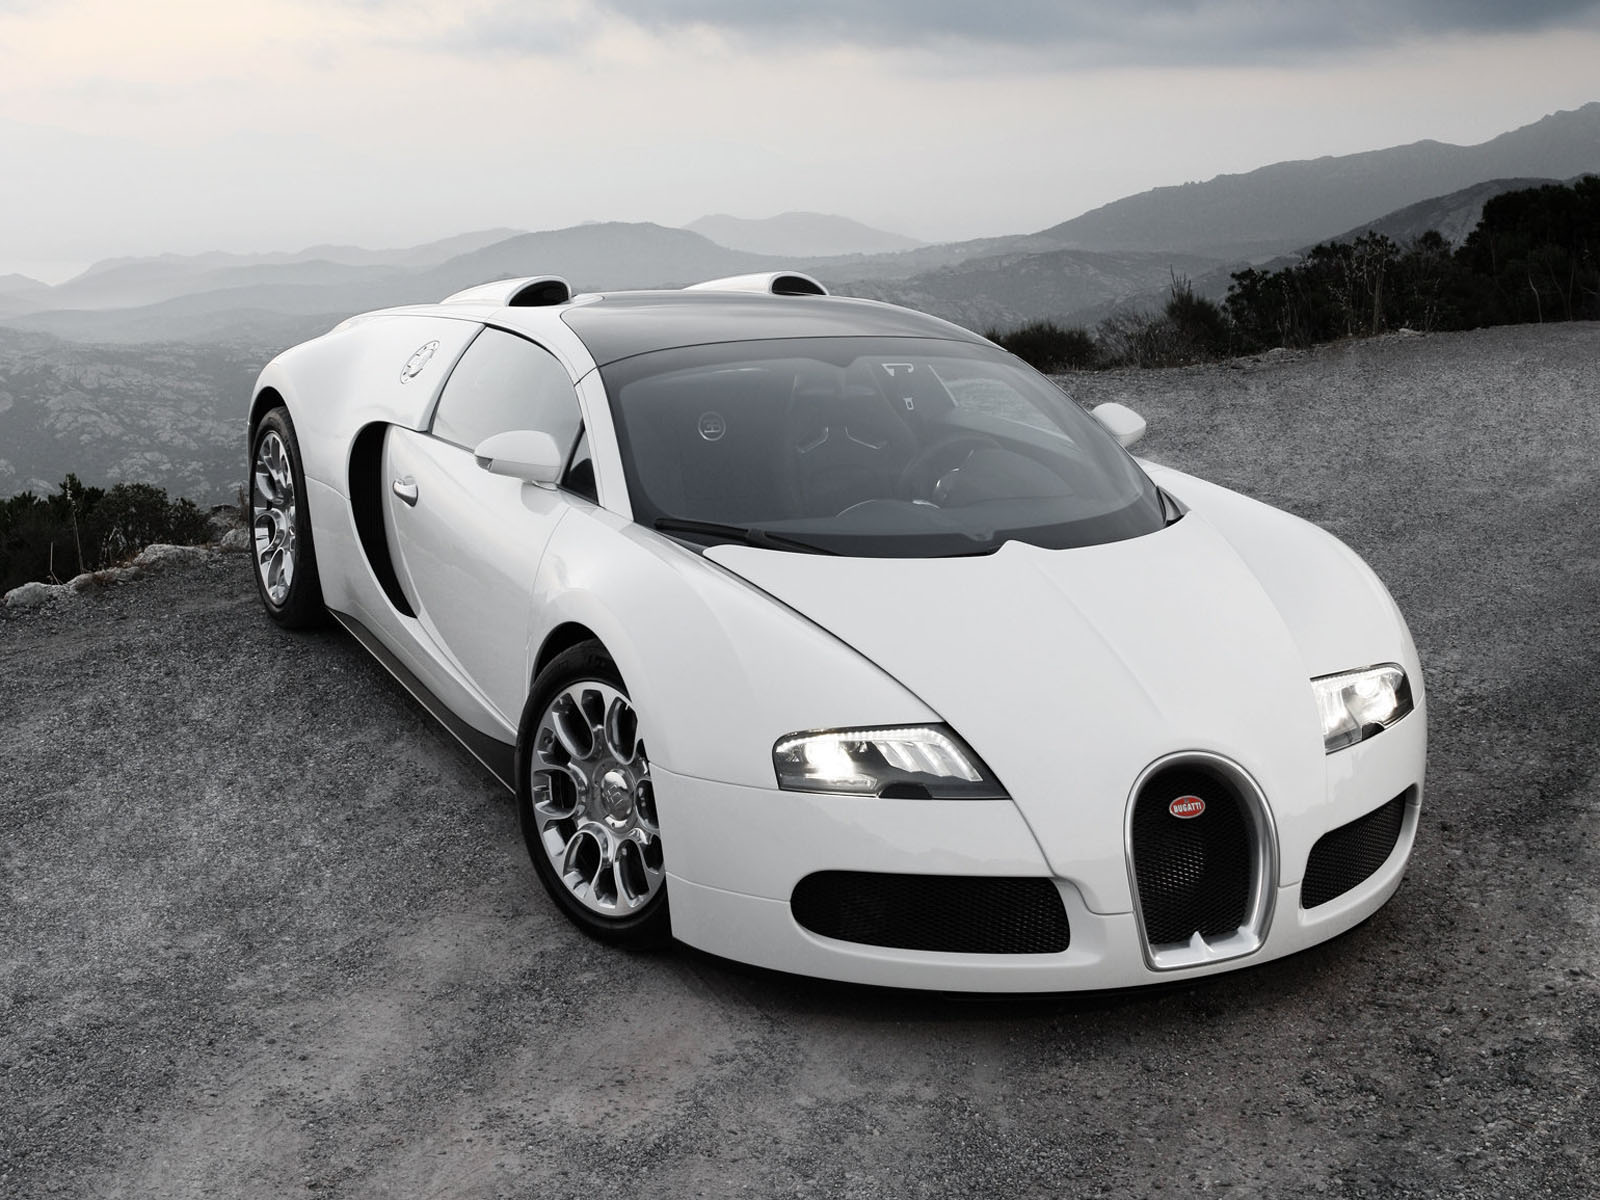 bugatti veyron super sport white wlhrlo engine information. Black Bedroom Furniture Sets. Home Design Ideas